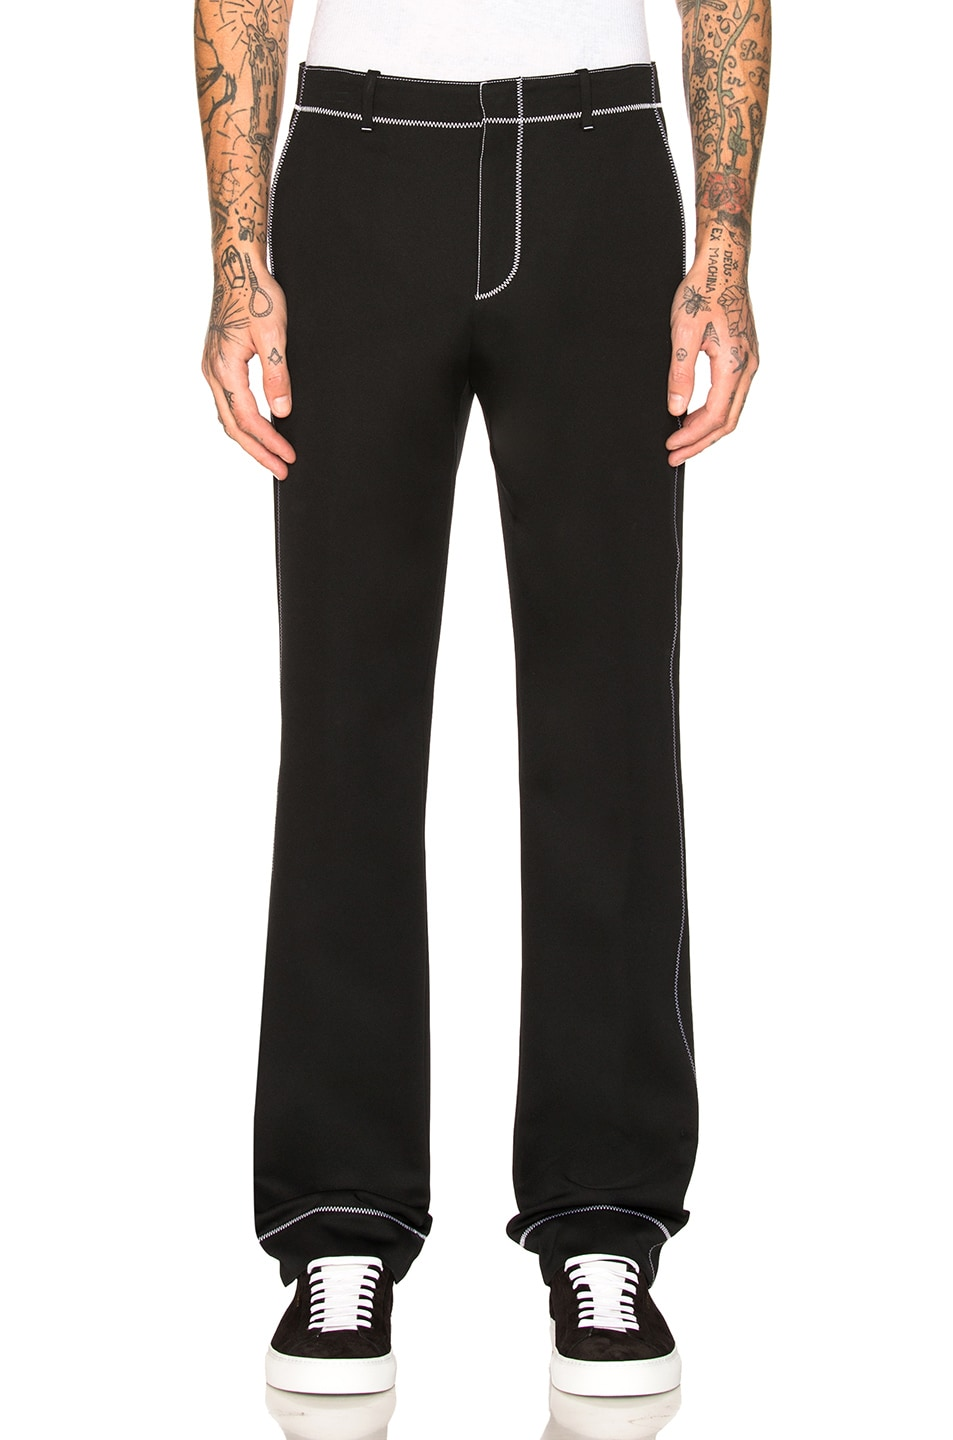 Contrast Stitch Trousers in Black Givenchy Cheap Sale Low Shipping Free Shipping 2018 Discount Outlet Locations YDT0fog